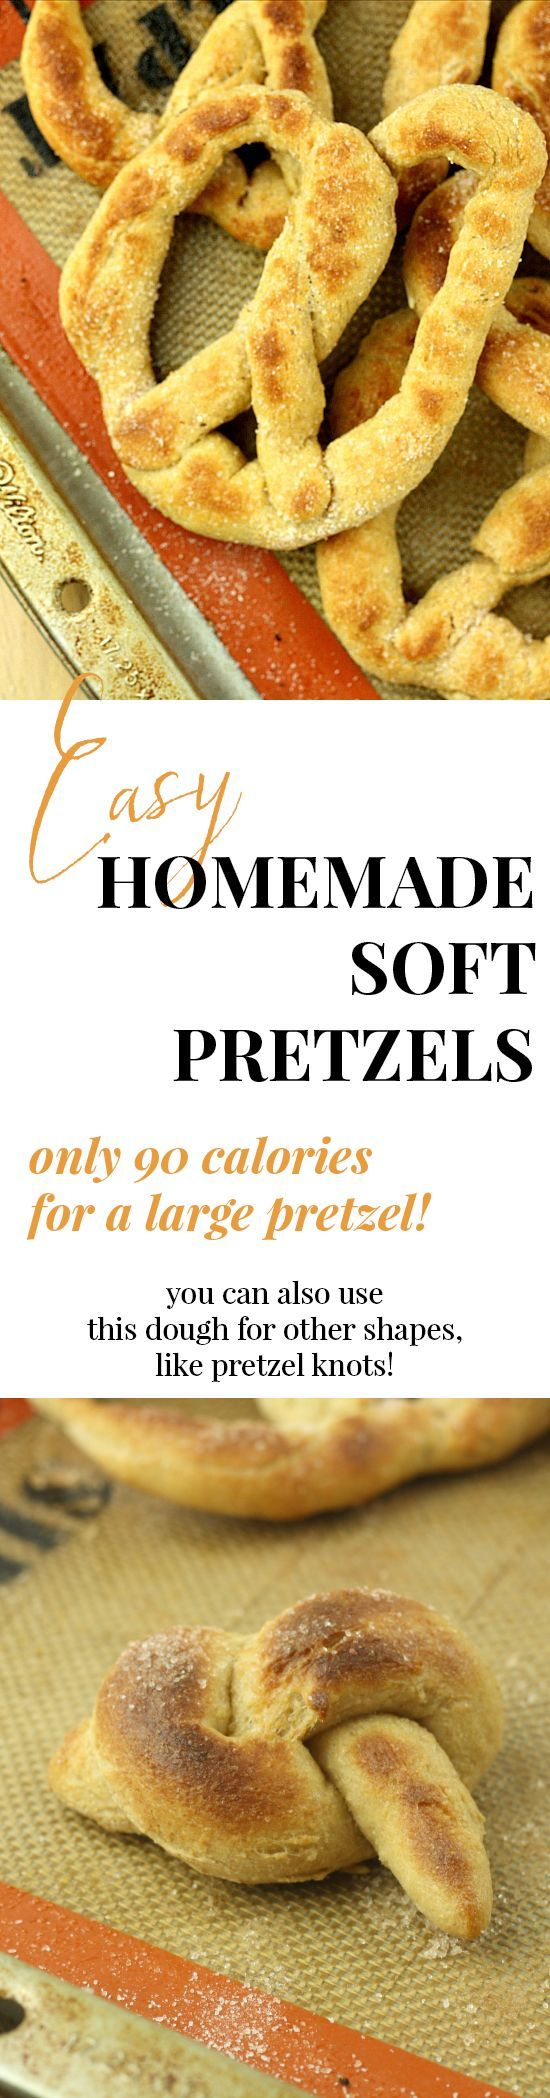 Only 90 calories for a GIANT soft pretzel! This post has lots of helpful pictures and the recipe only takes 45 minutes. I am in love. I'll never buy soft pretzels again!